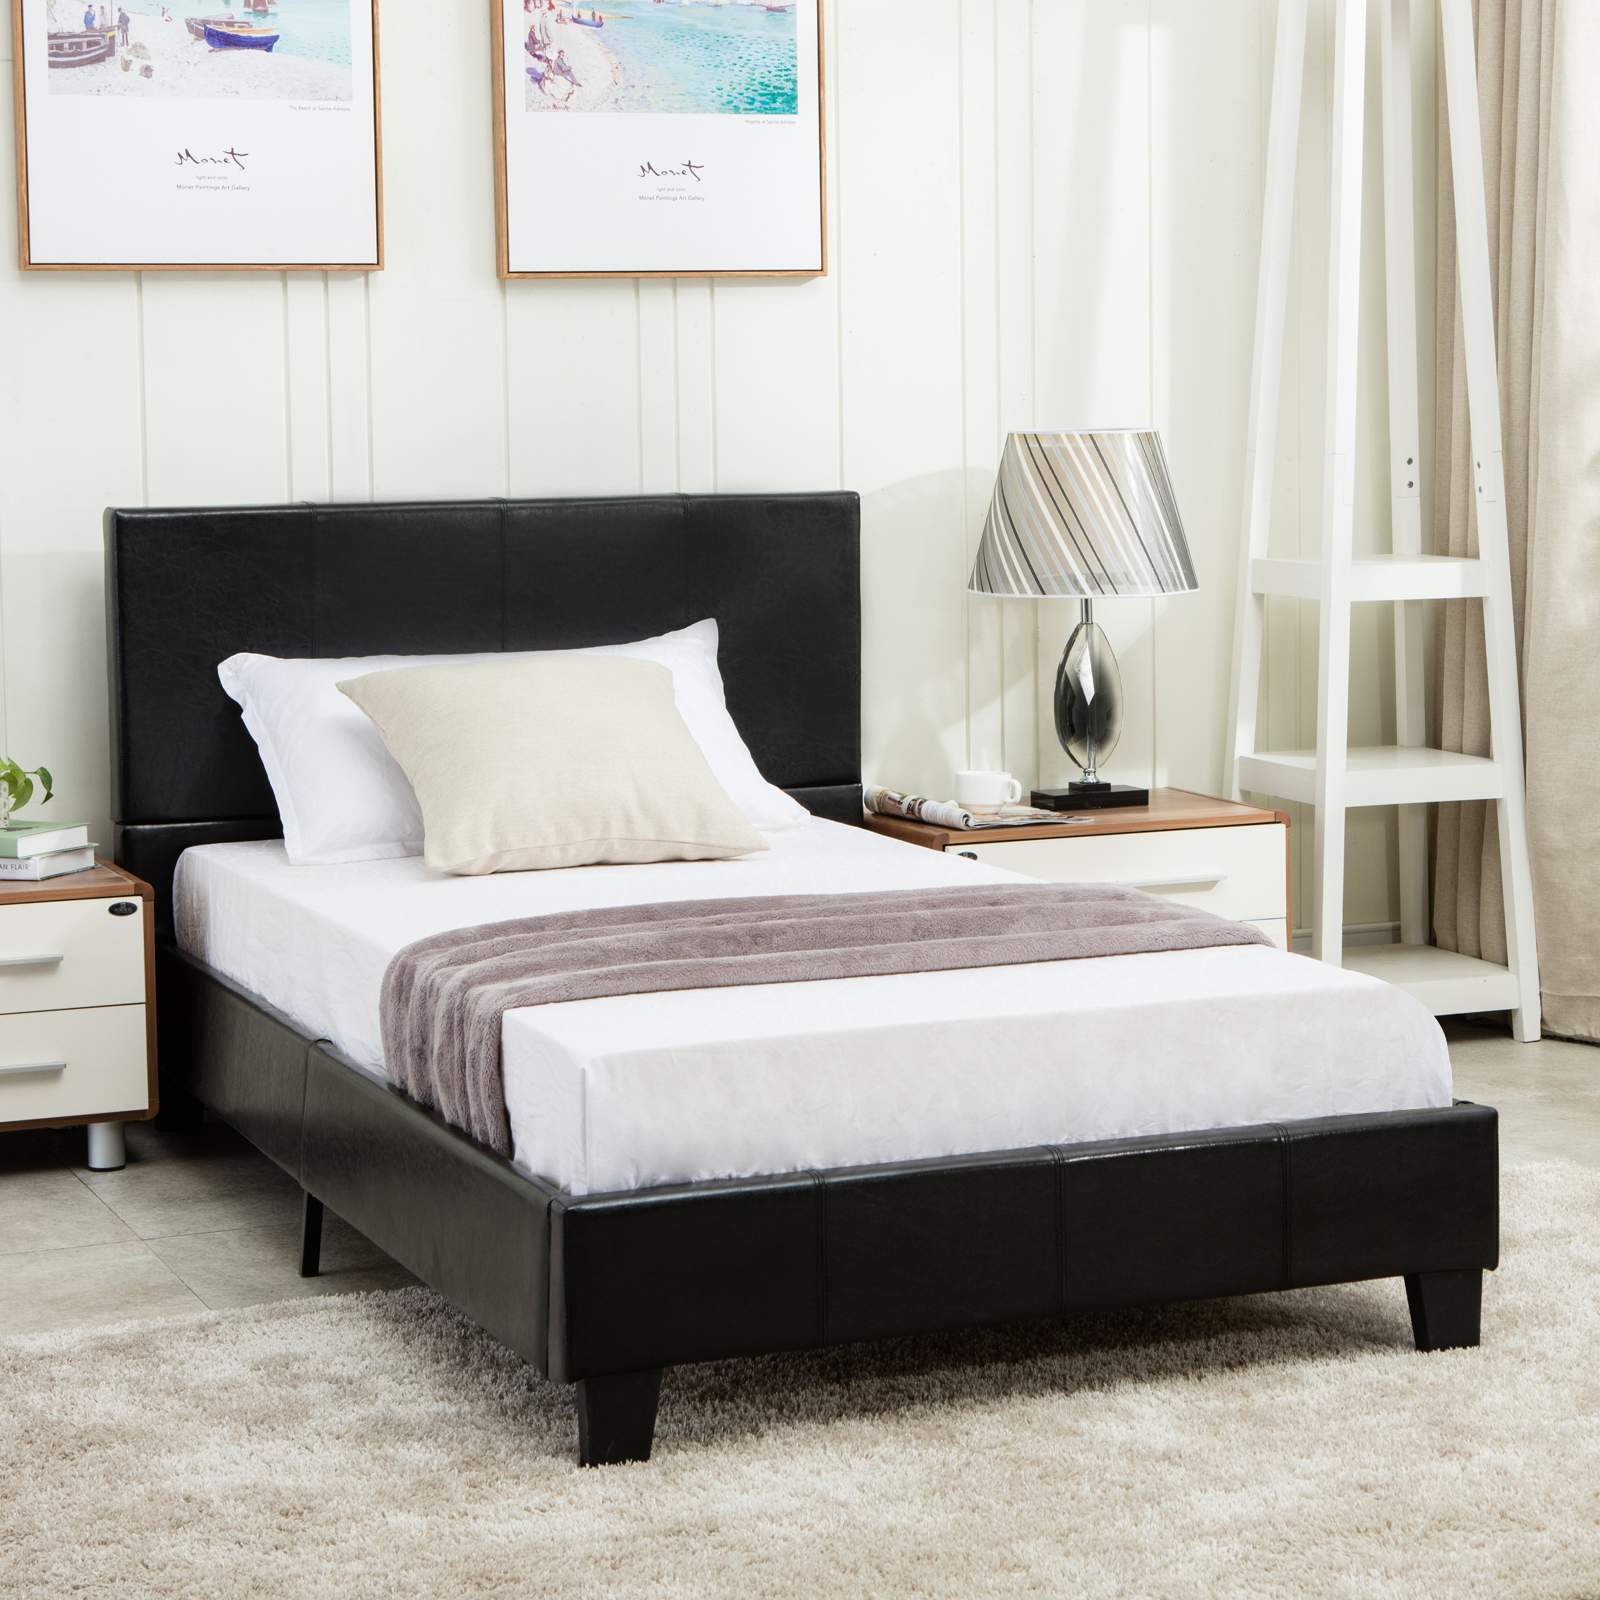 Twin Size Faux Leather Platform Bed Frame & Slats ...